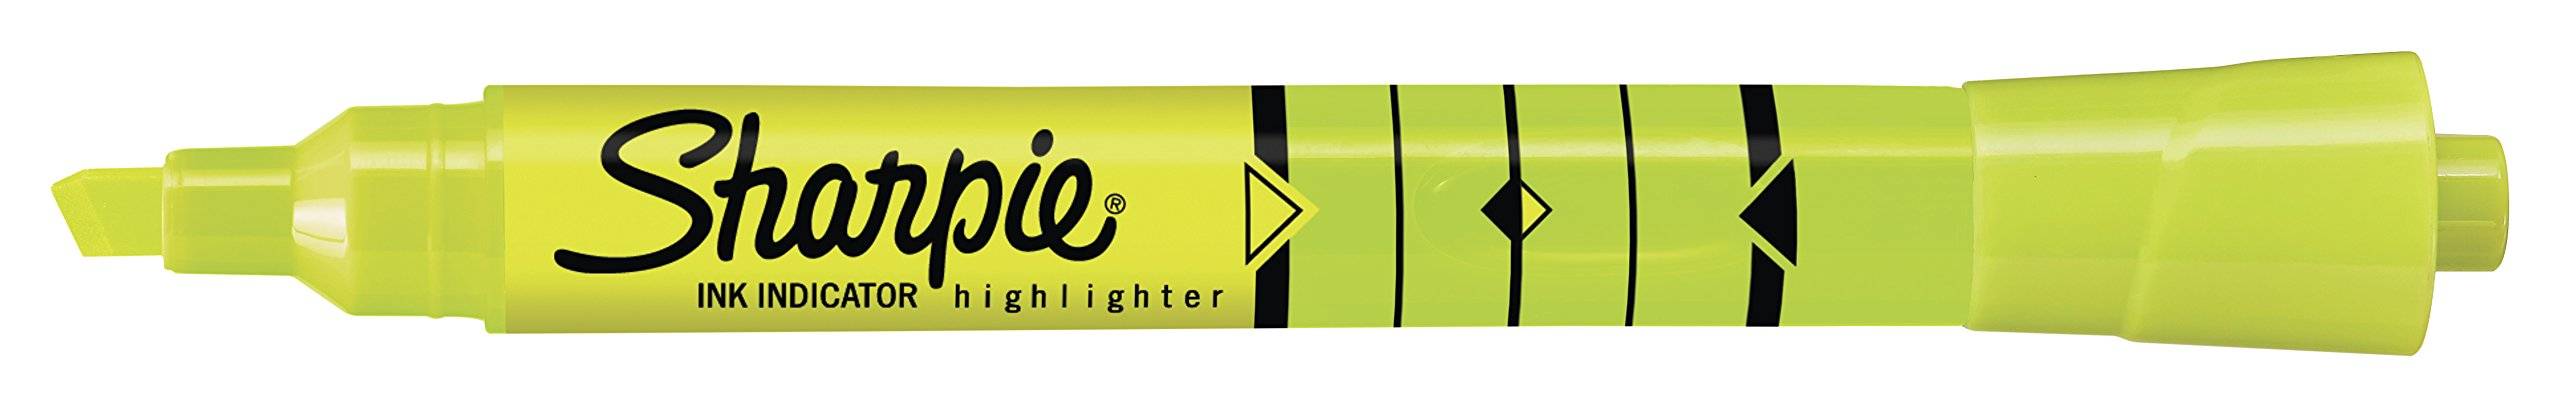 Sharpie Ink Indicator Tank Highlighters, Chisel Tip, Fluorescent Yellow, 12 Count by Sharpie (Image #3)